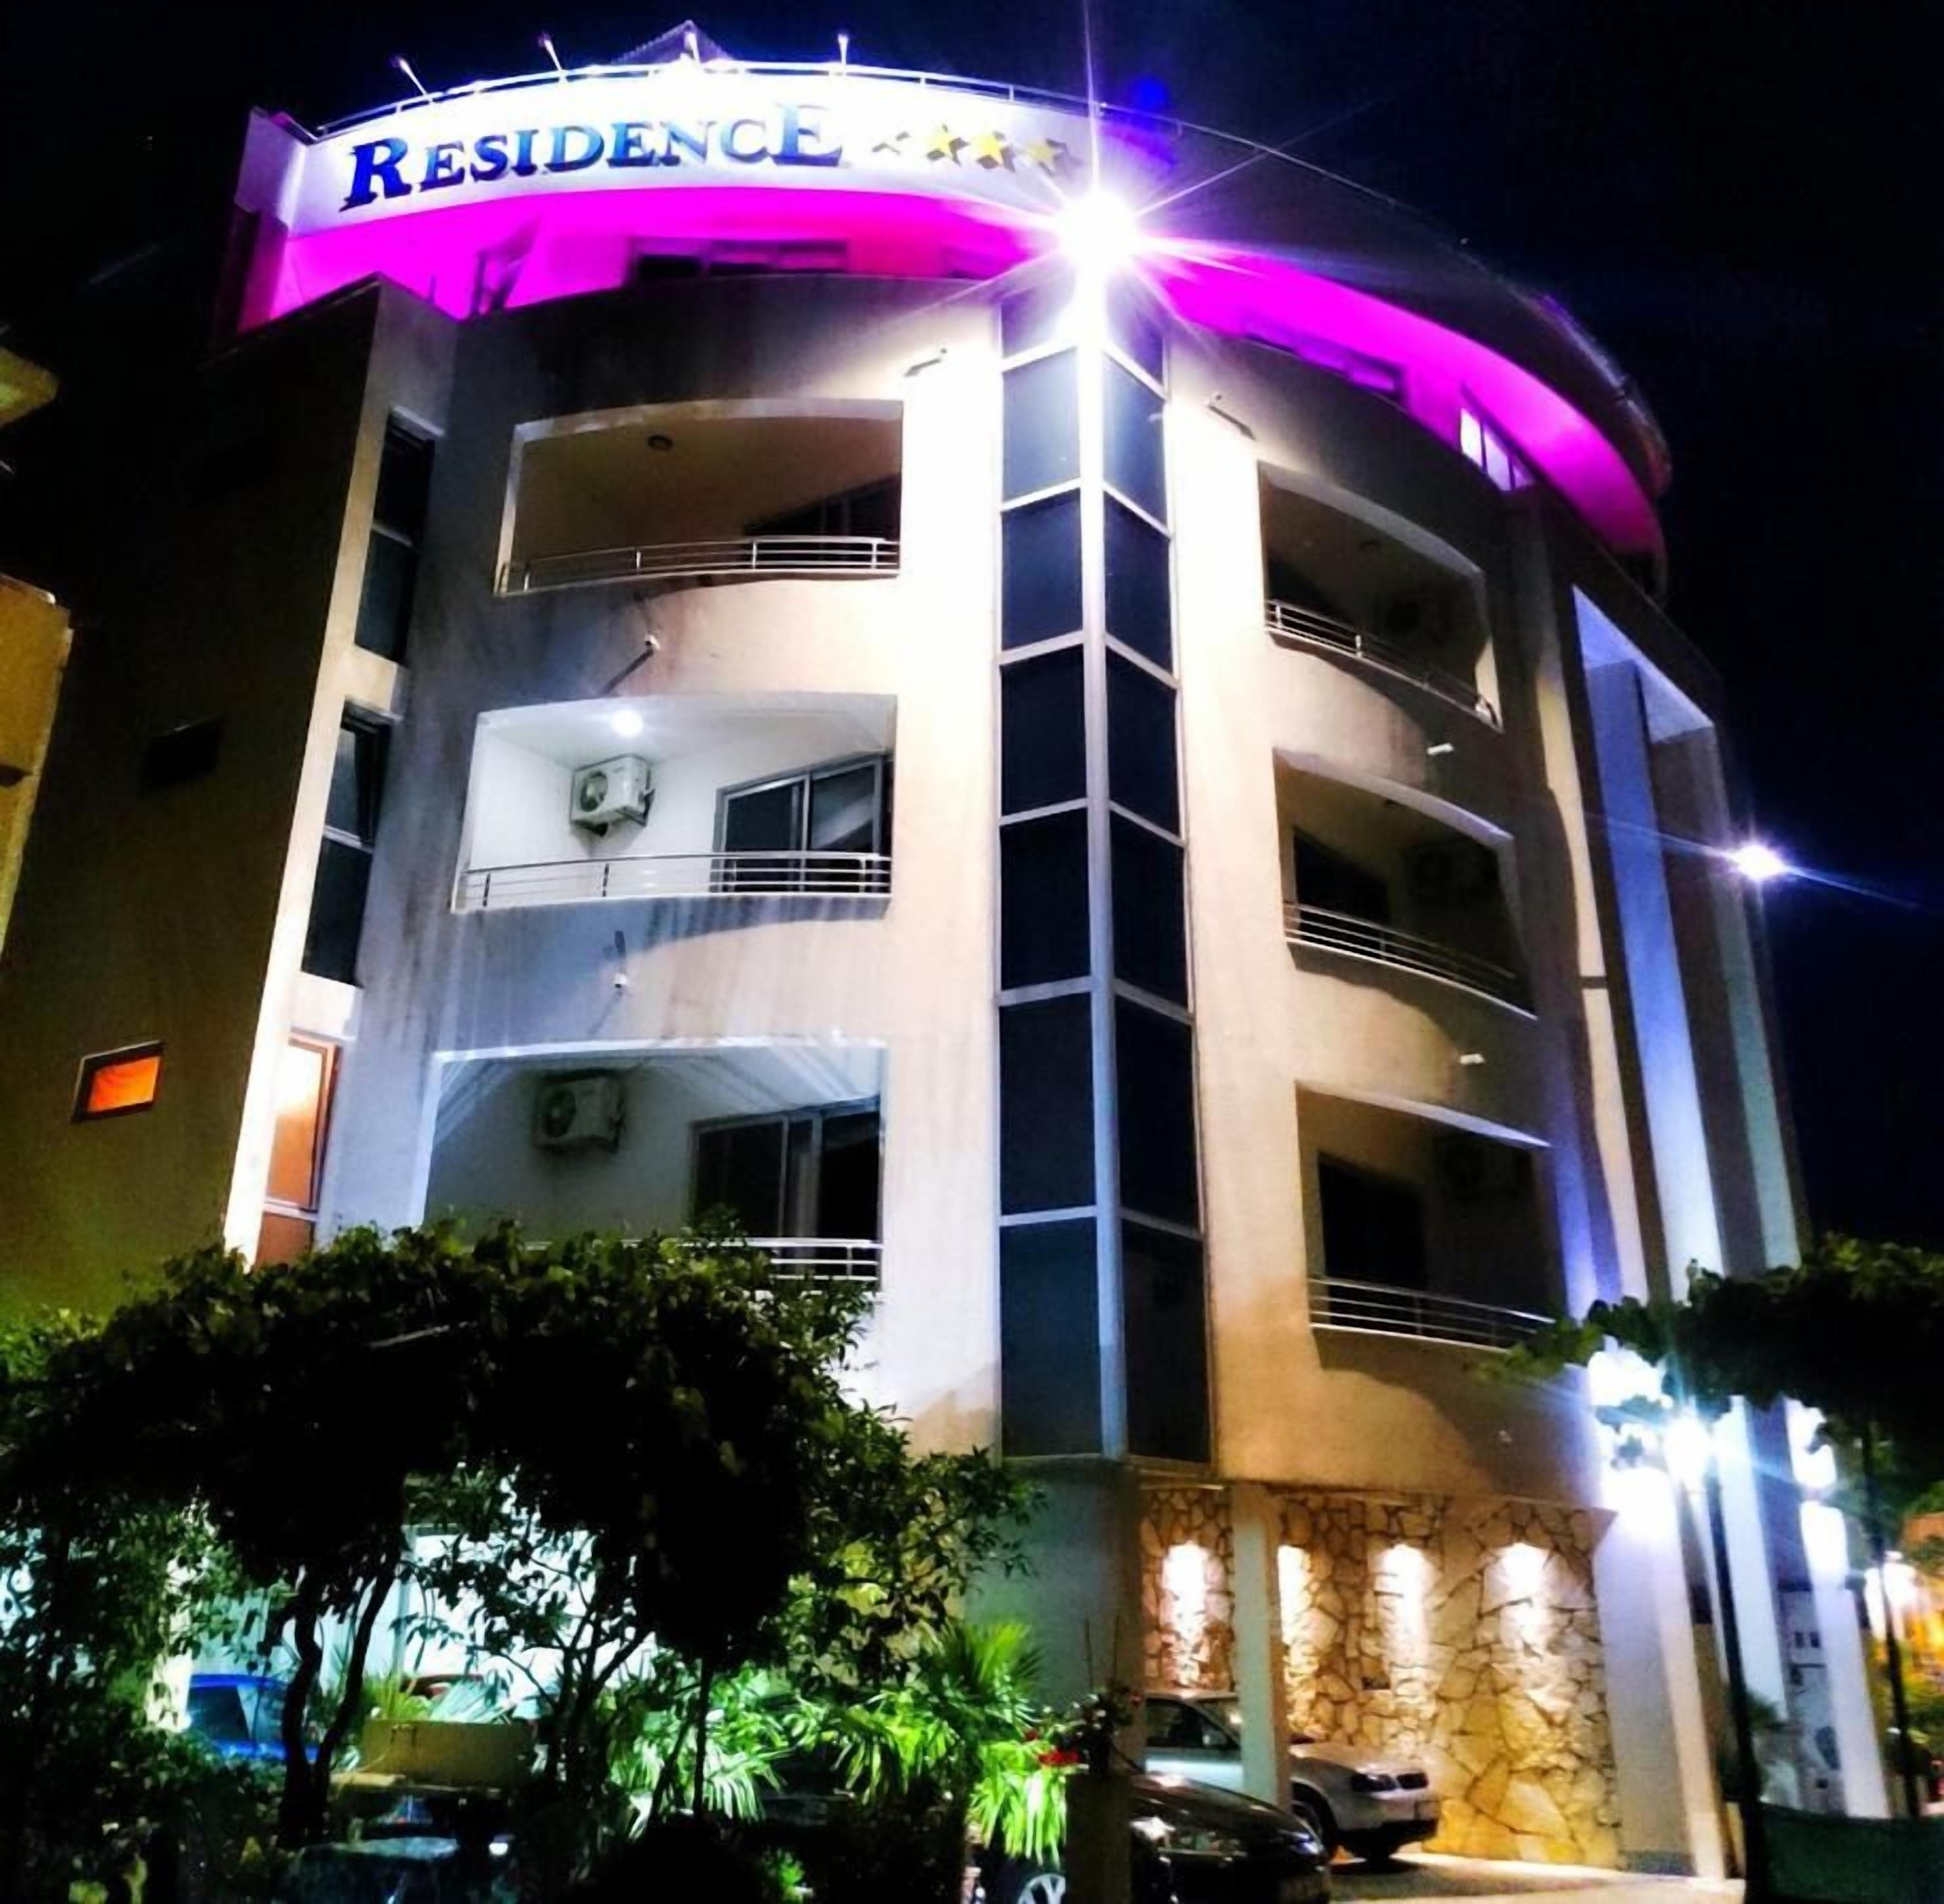 Residence Apartments